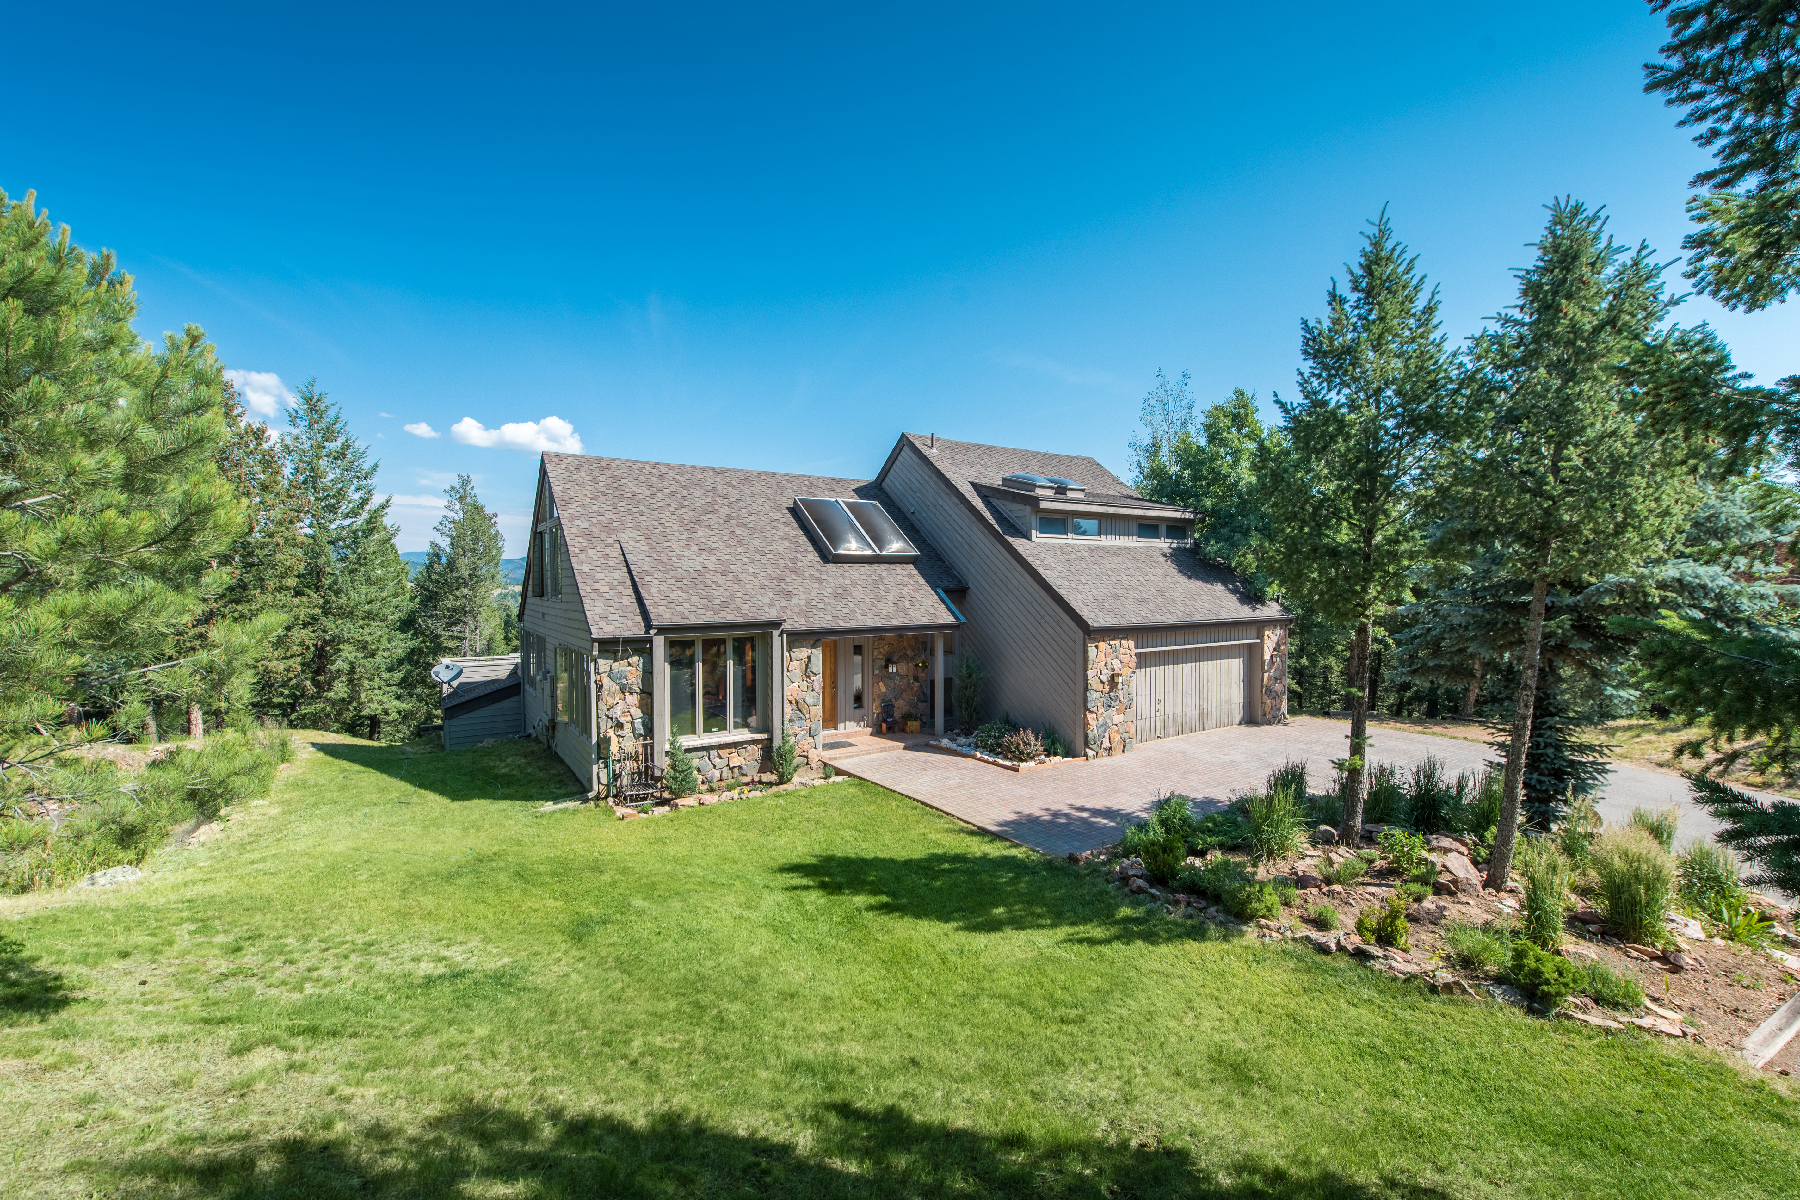 Single Family Home for Active at Easy Mountain Living 32520 Woodland Evergreen, Colorado 80439 United States